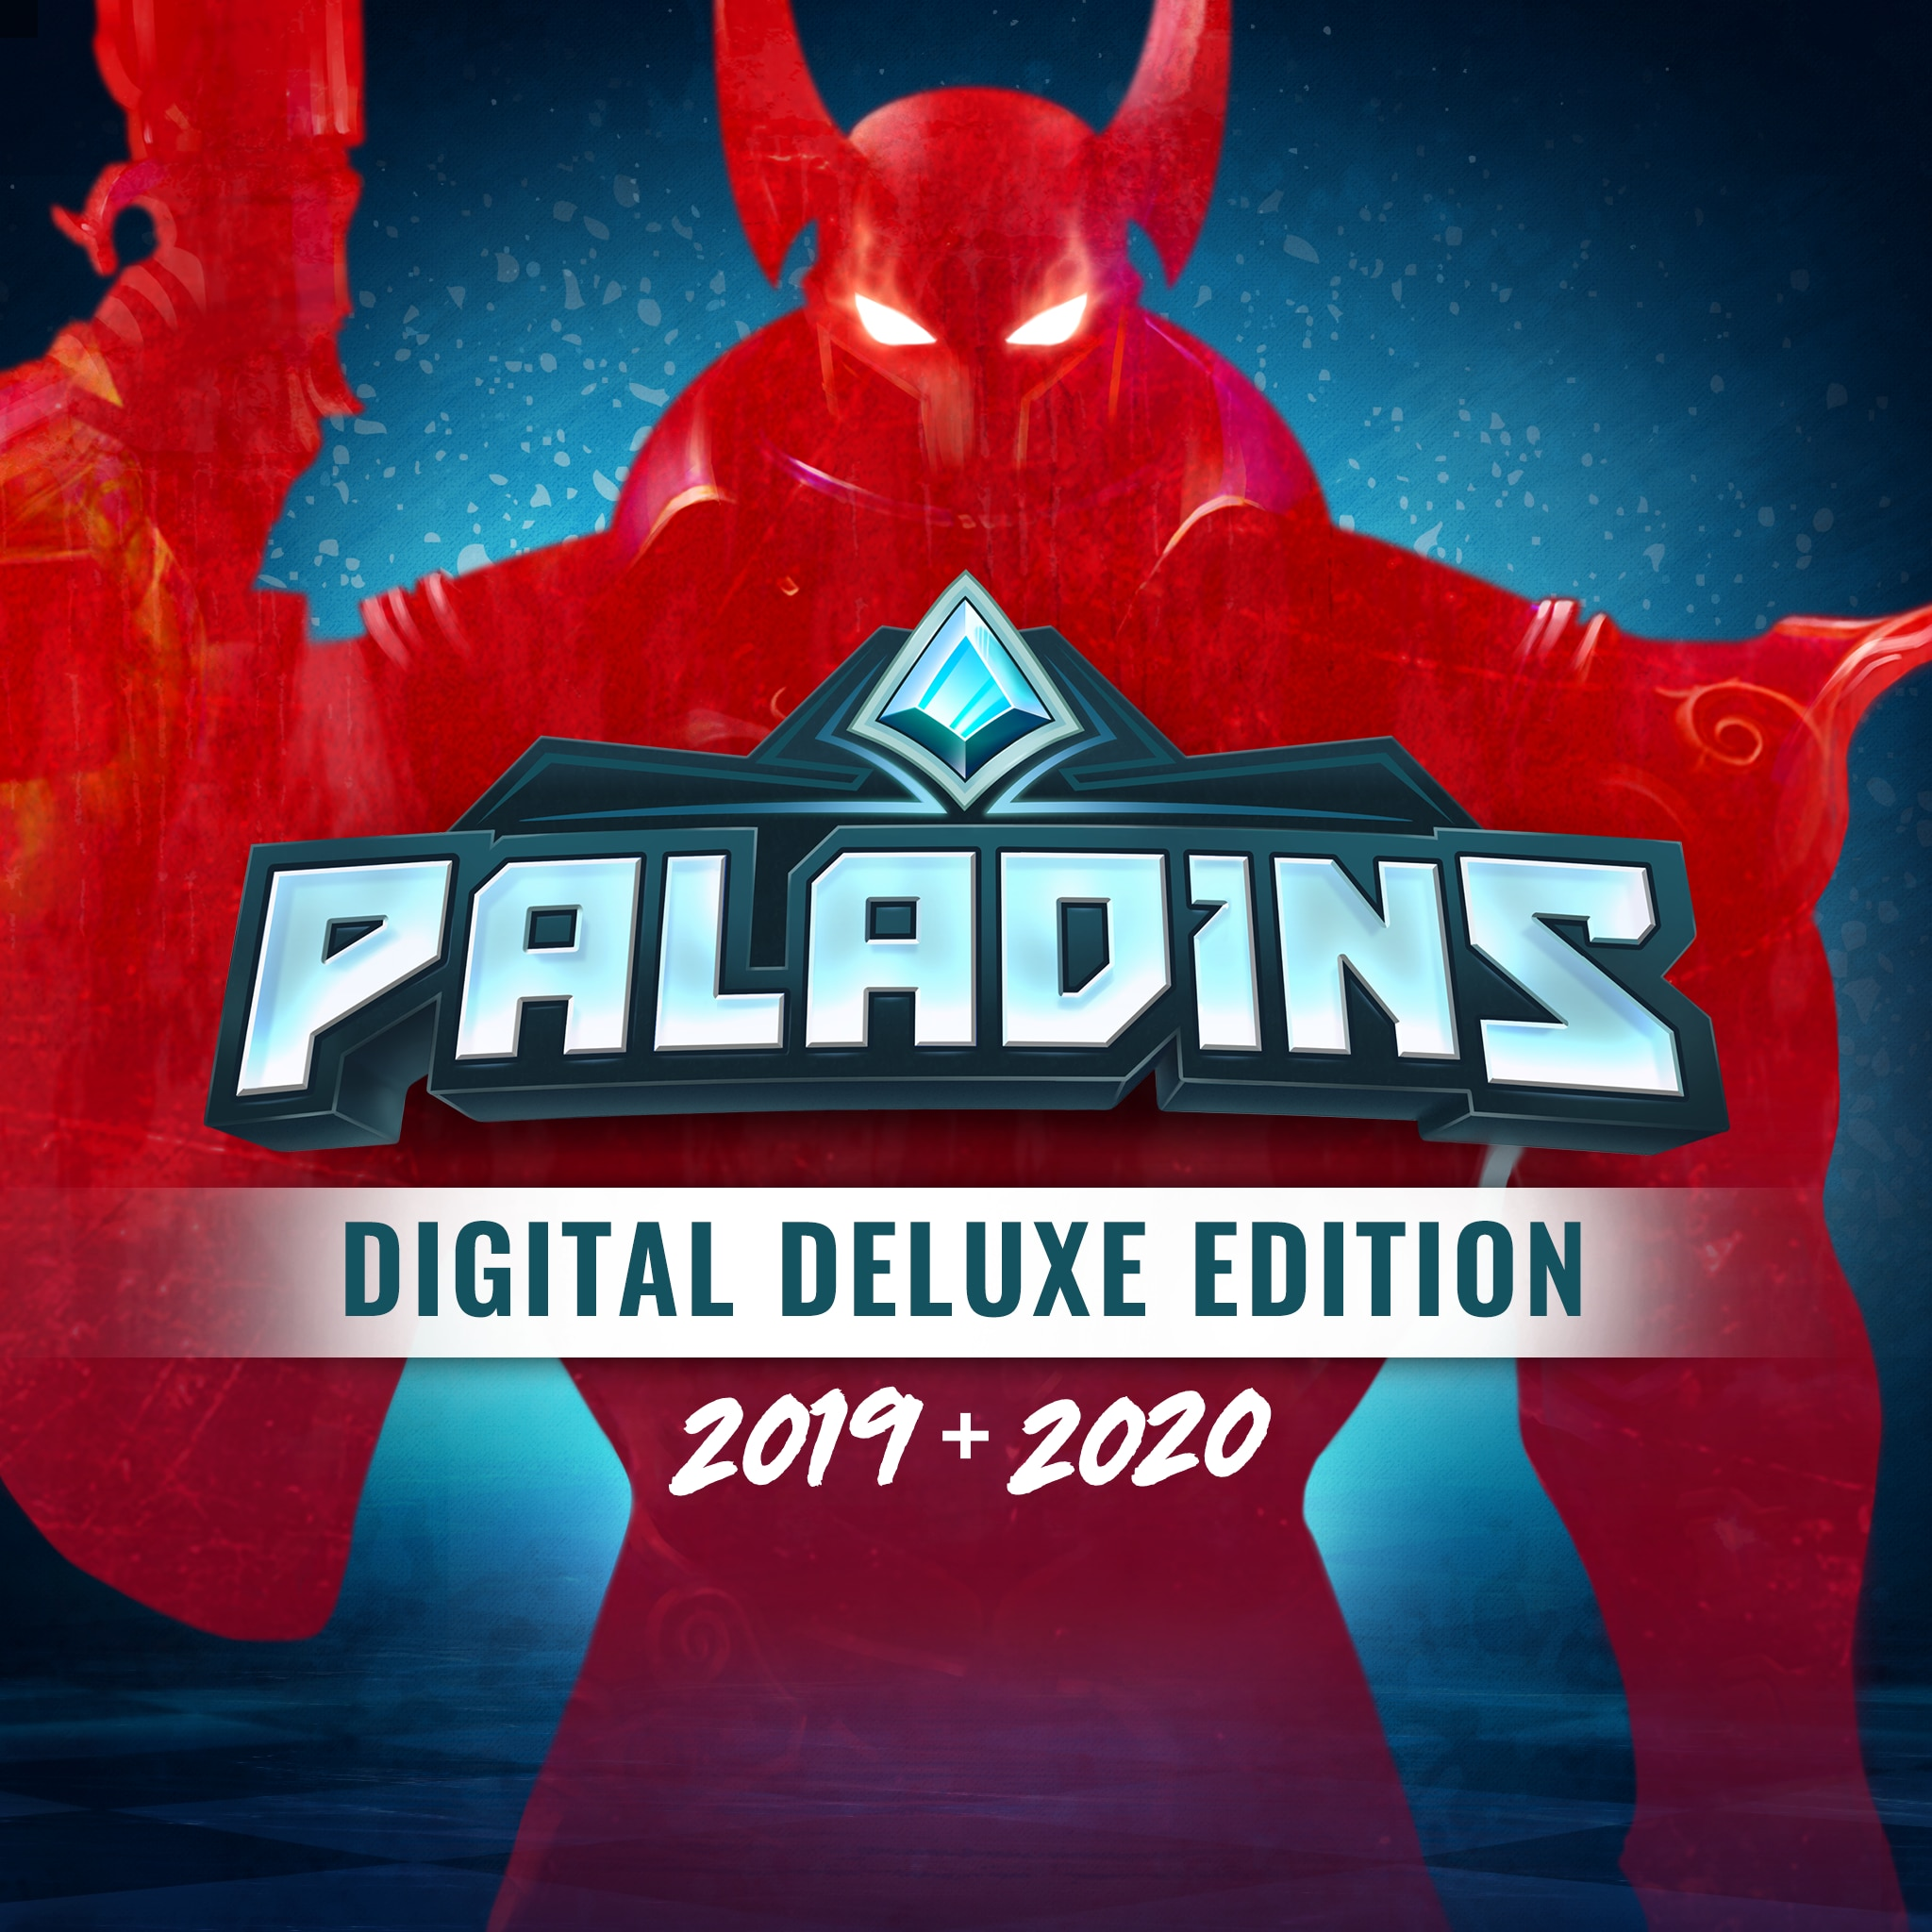 Paladins Digital Deluxe Edition 2019 + 2020